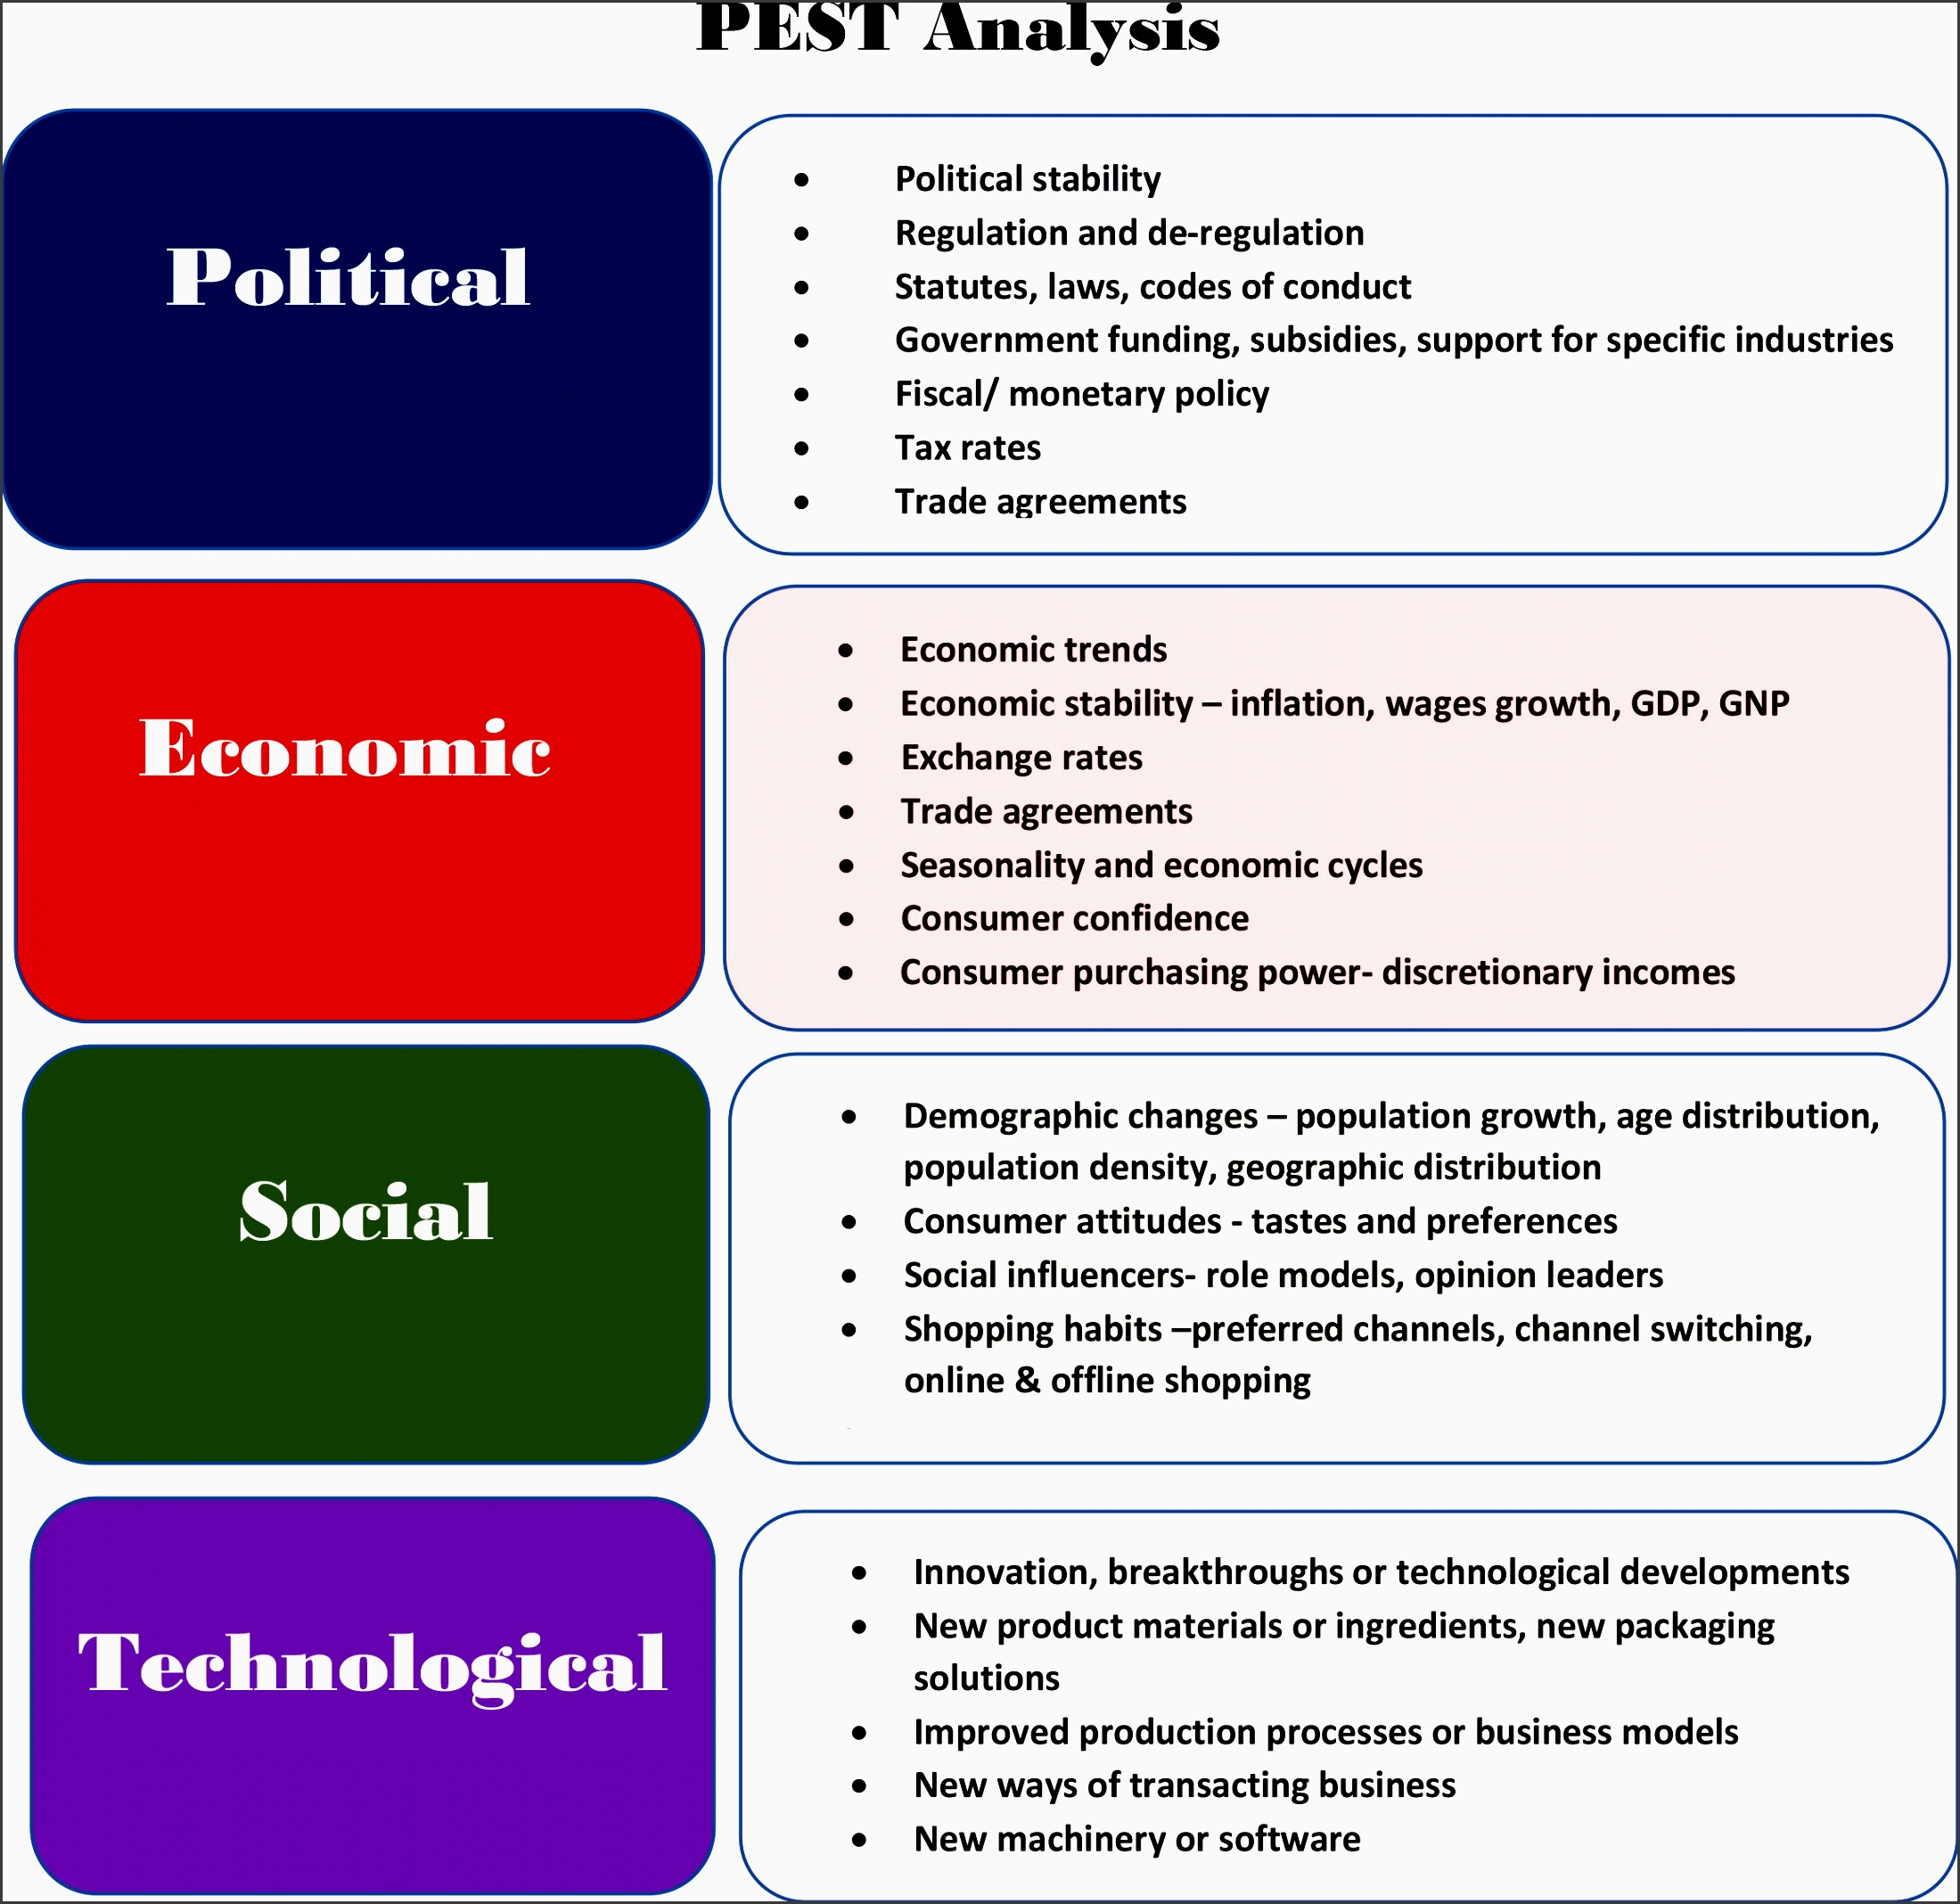 brief description of pest analysis edit